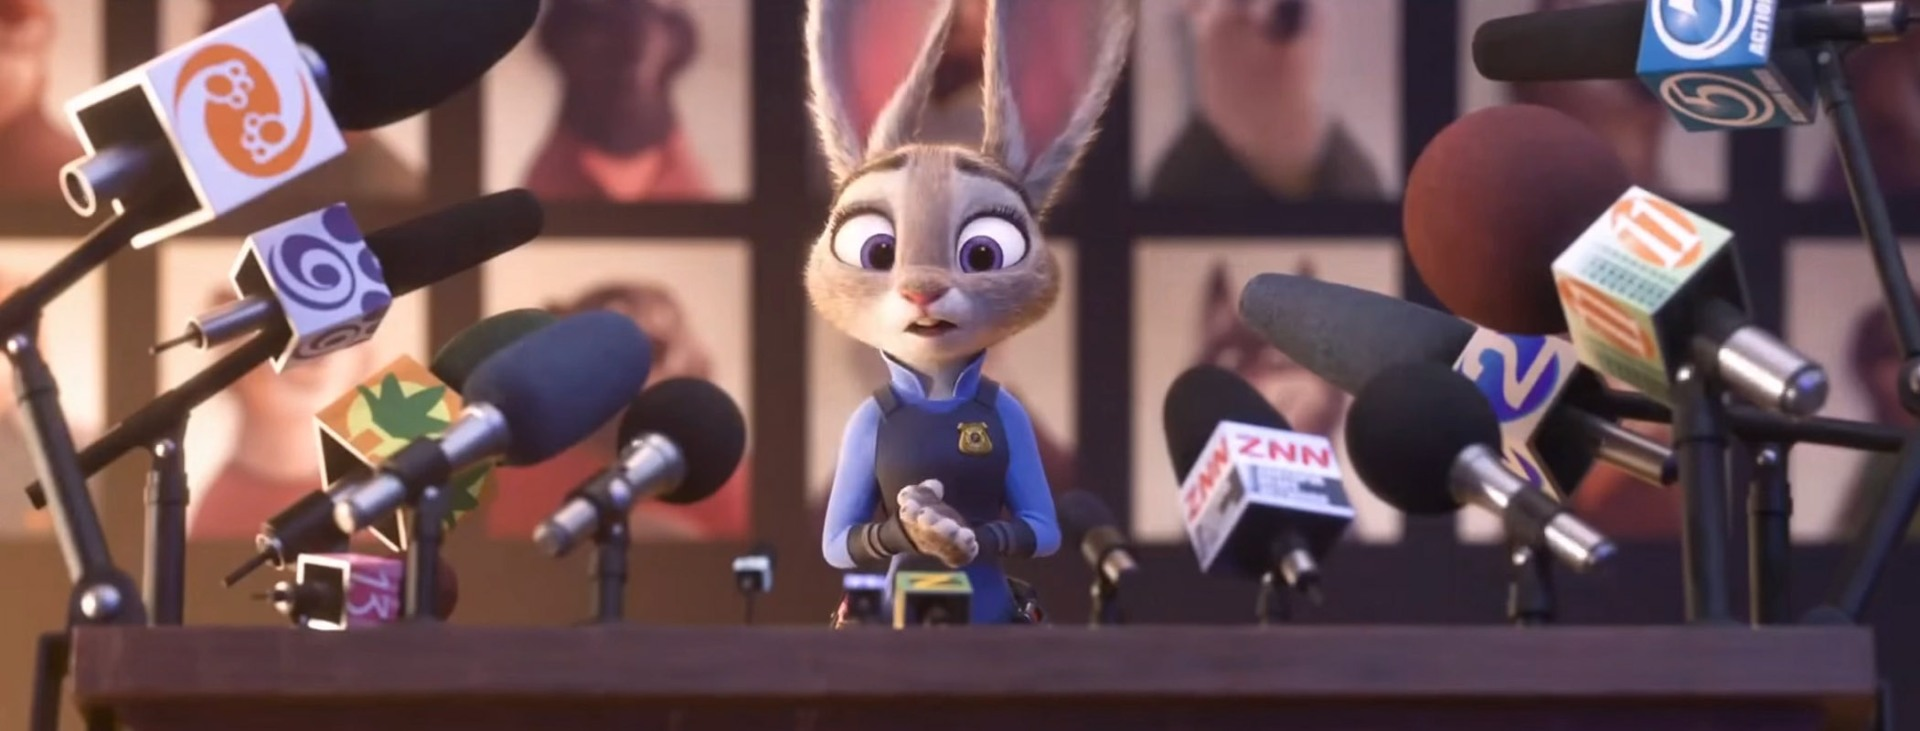 Zootopia - Hopps News Conference